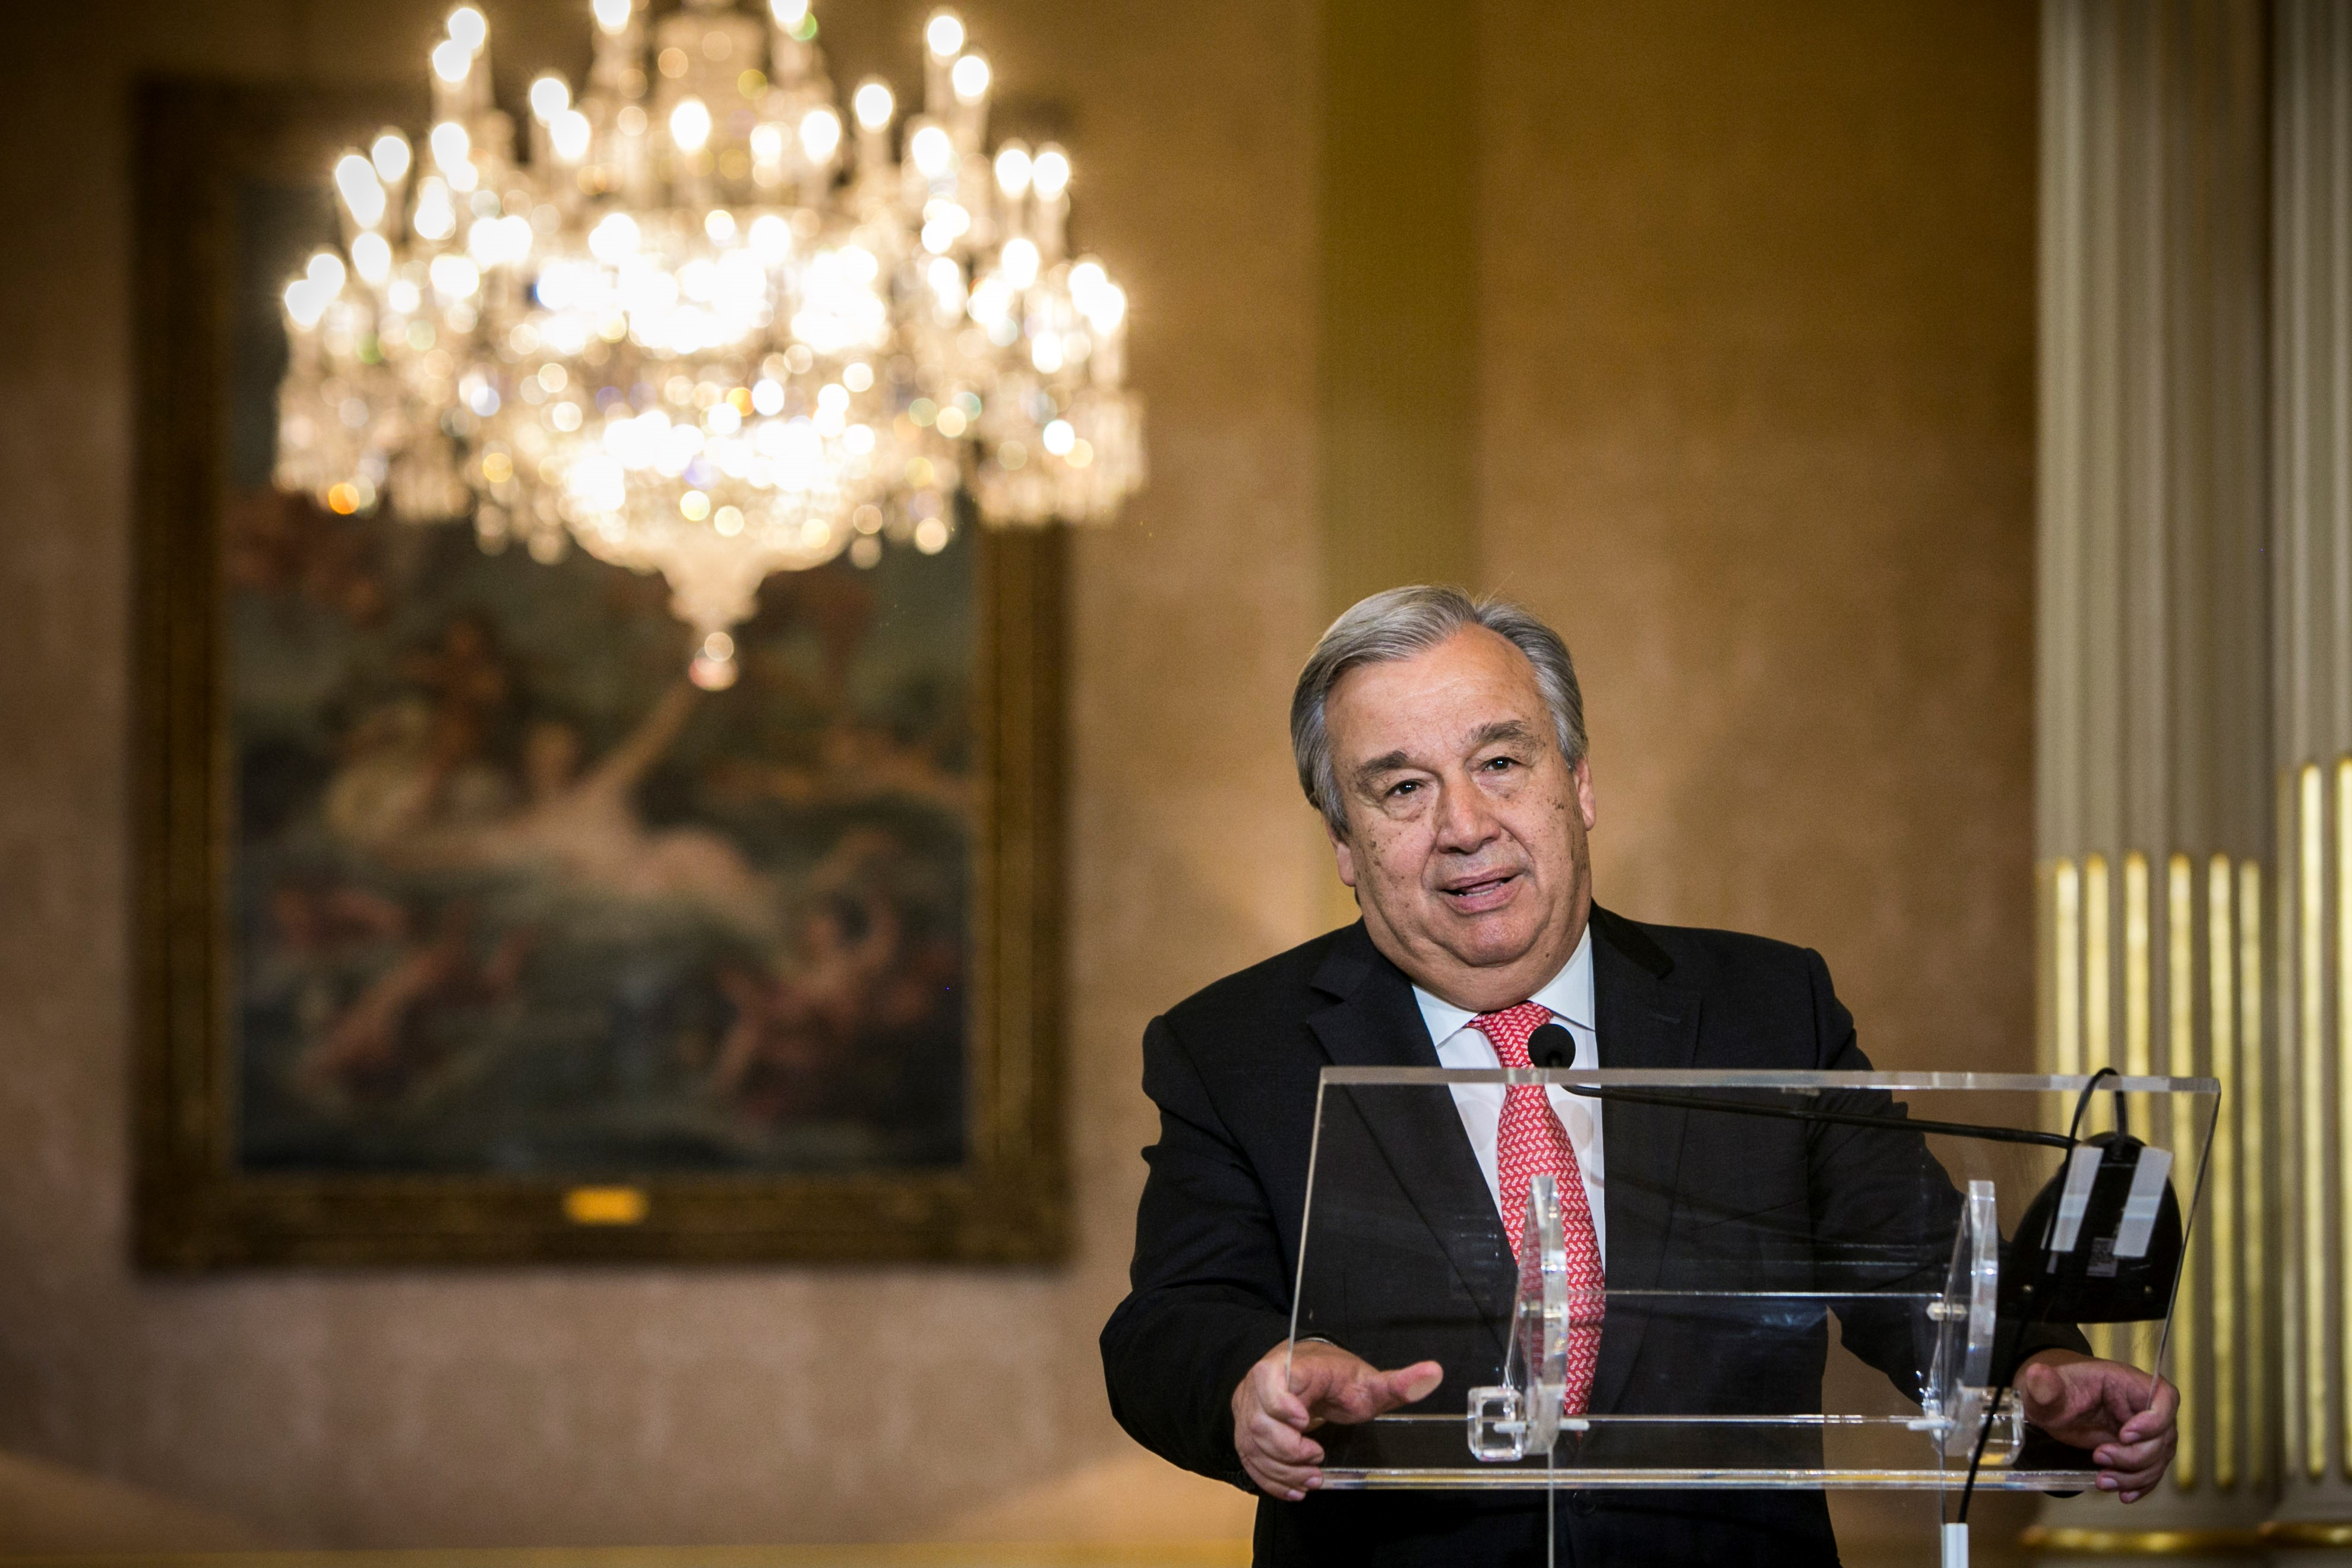 New appointed United Nations general secretary Antonio Guterres delivers a speech during a press conference in Lisbon, Portugal on October 6, 2016.